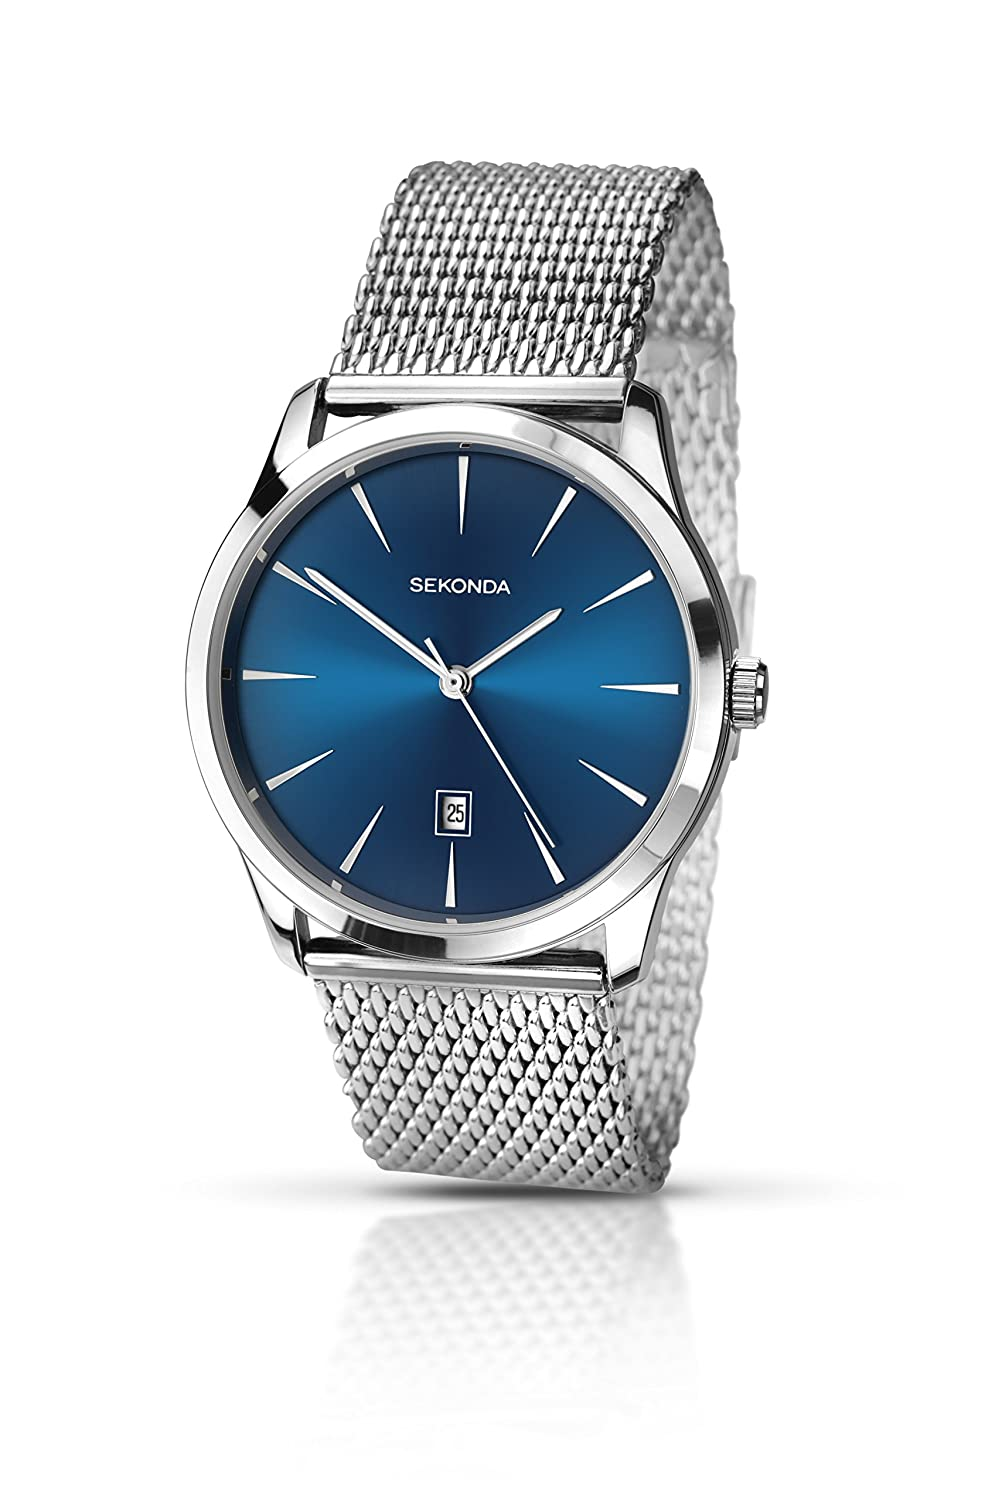 Amazon.com: Sekonda Mens Quartz Watch with Blue Dial Analogue Display and Silver Stainless Steel Bracelet 1065.27: Watches